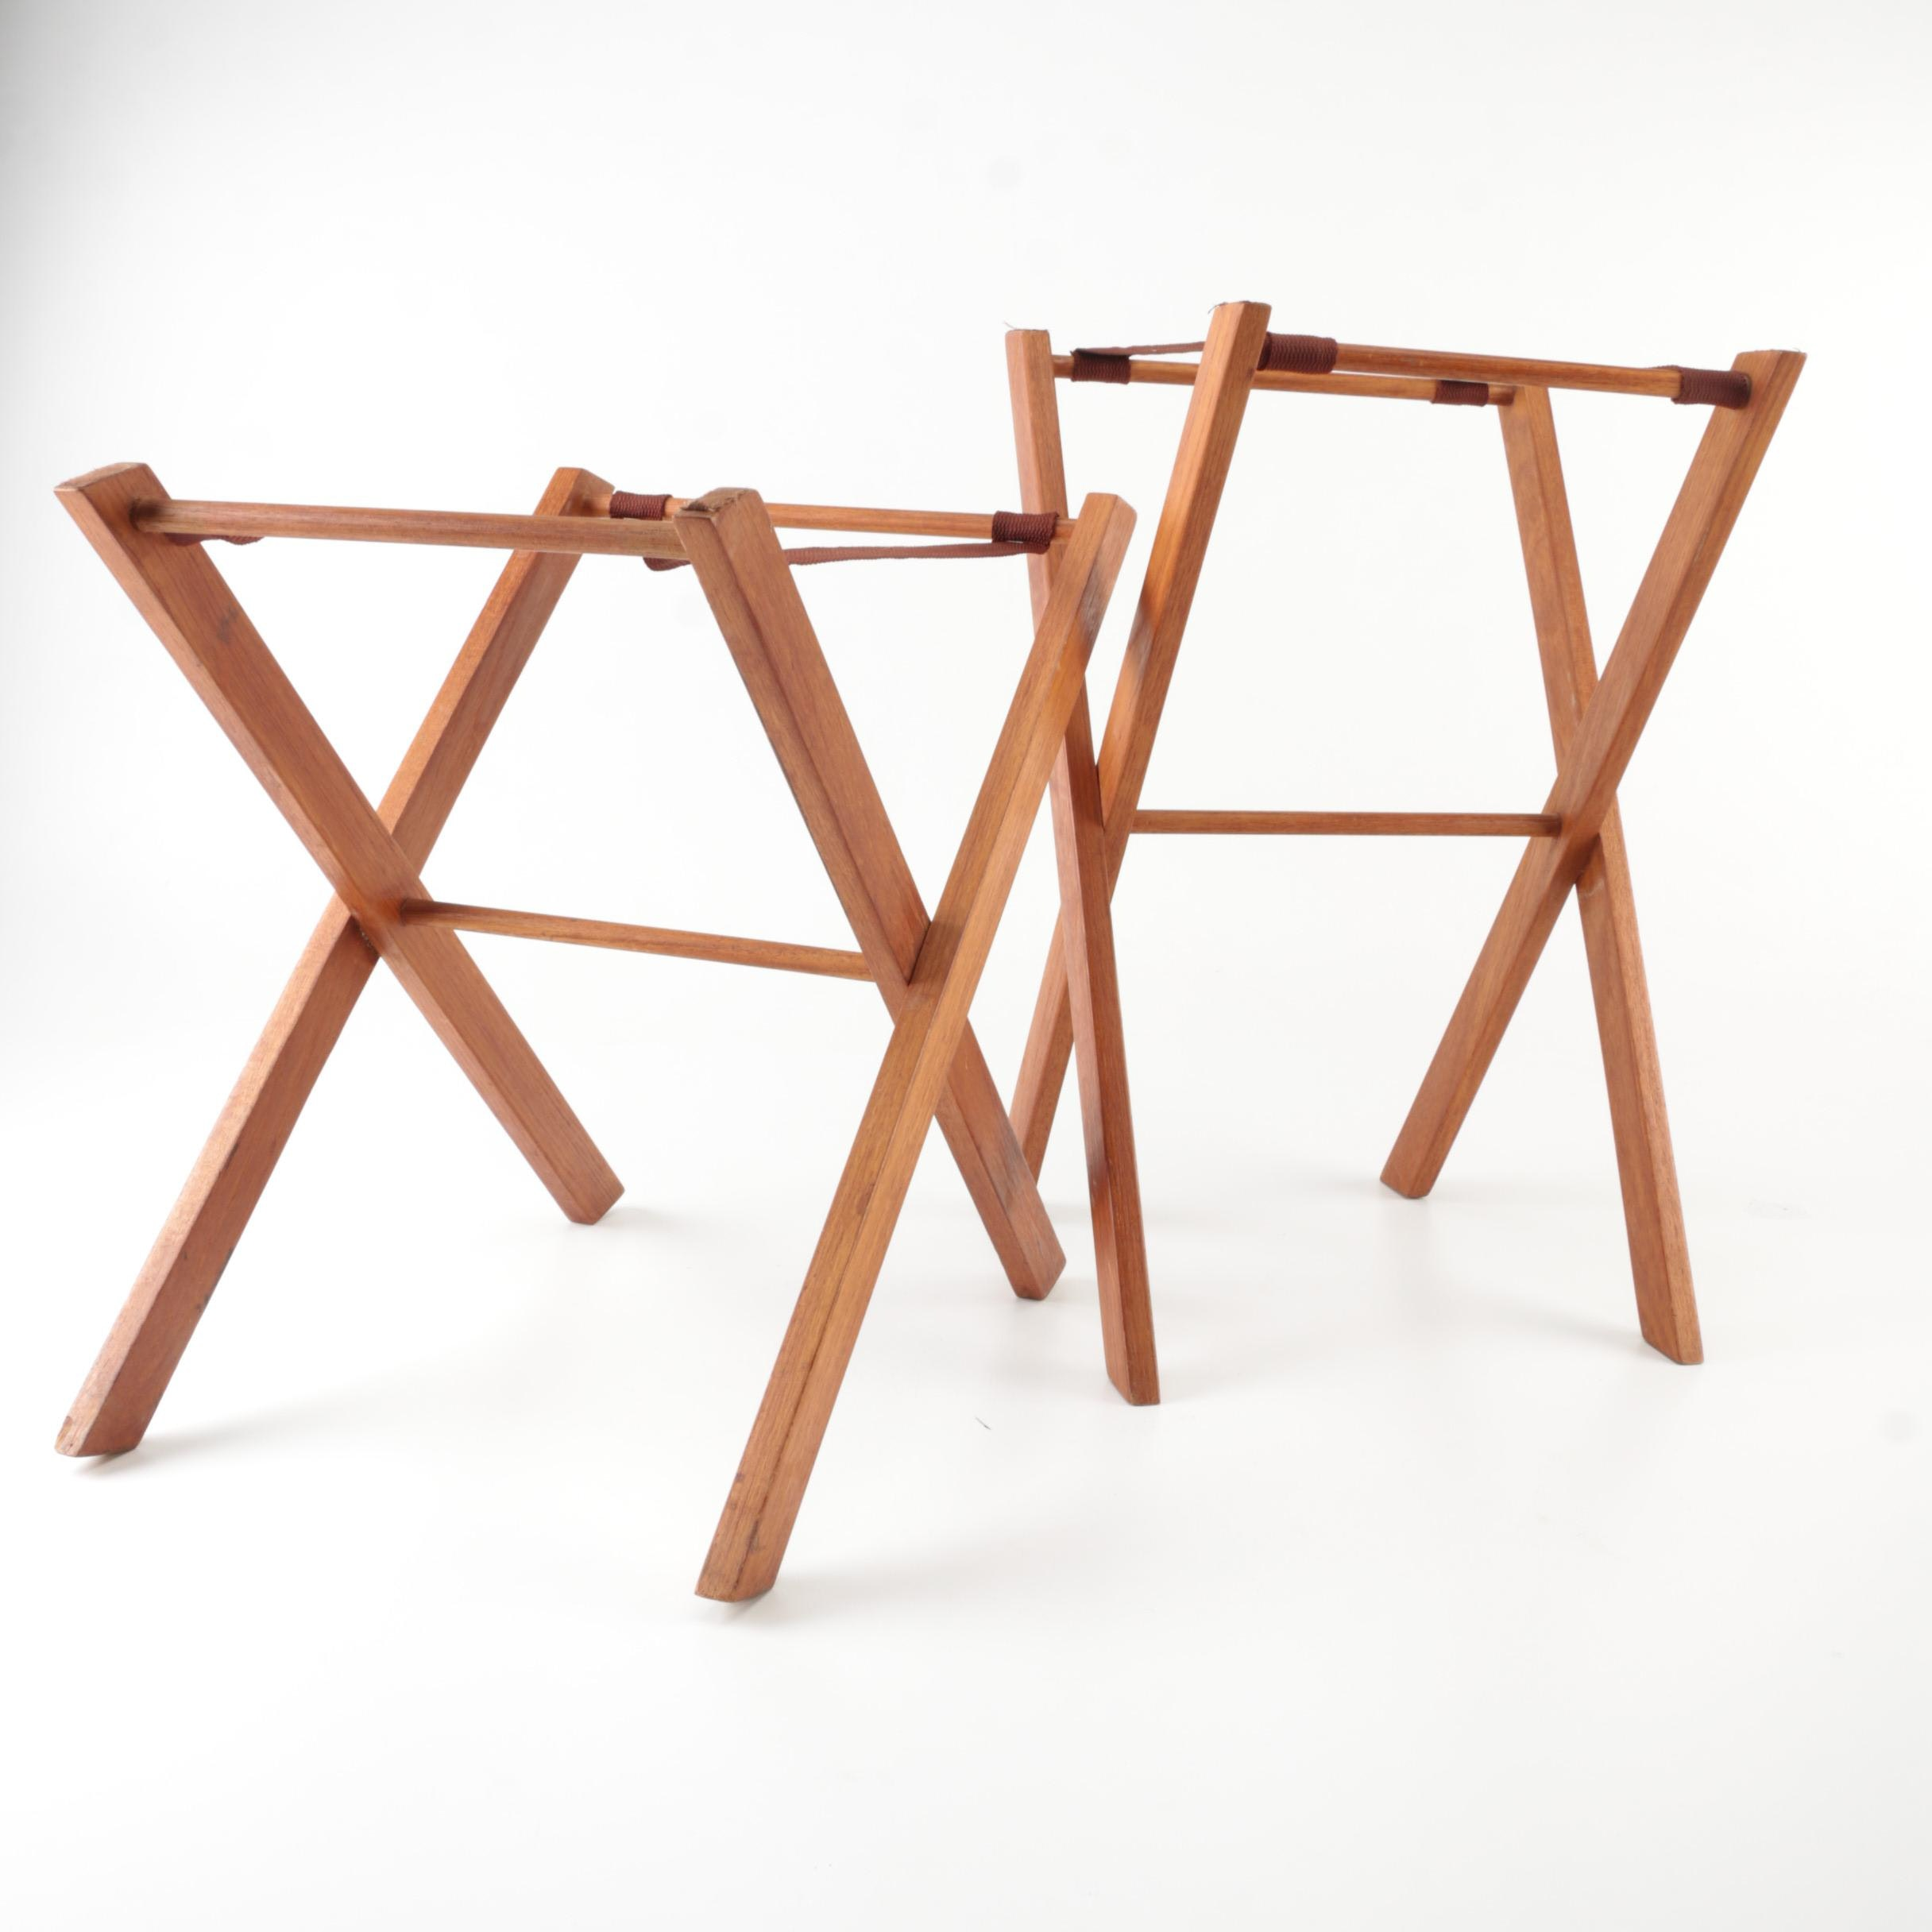 Wooden Luggage Stands